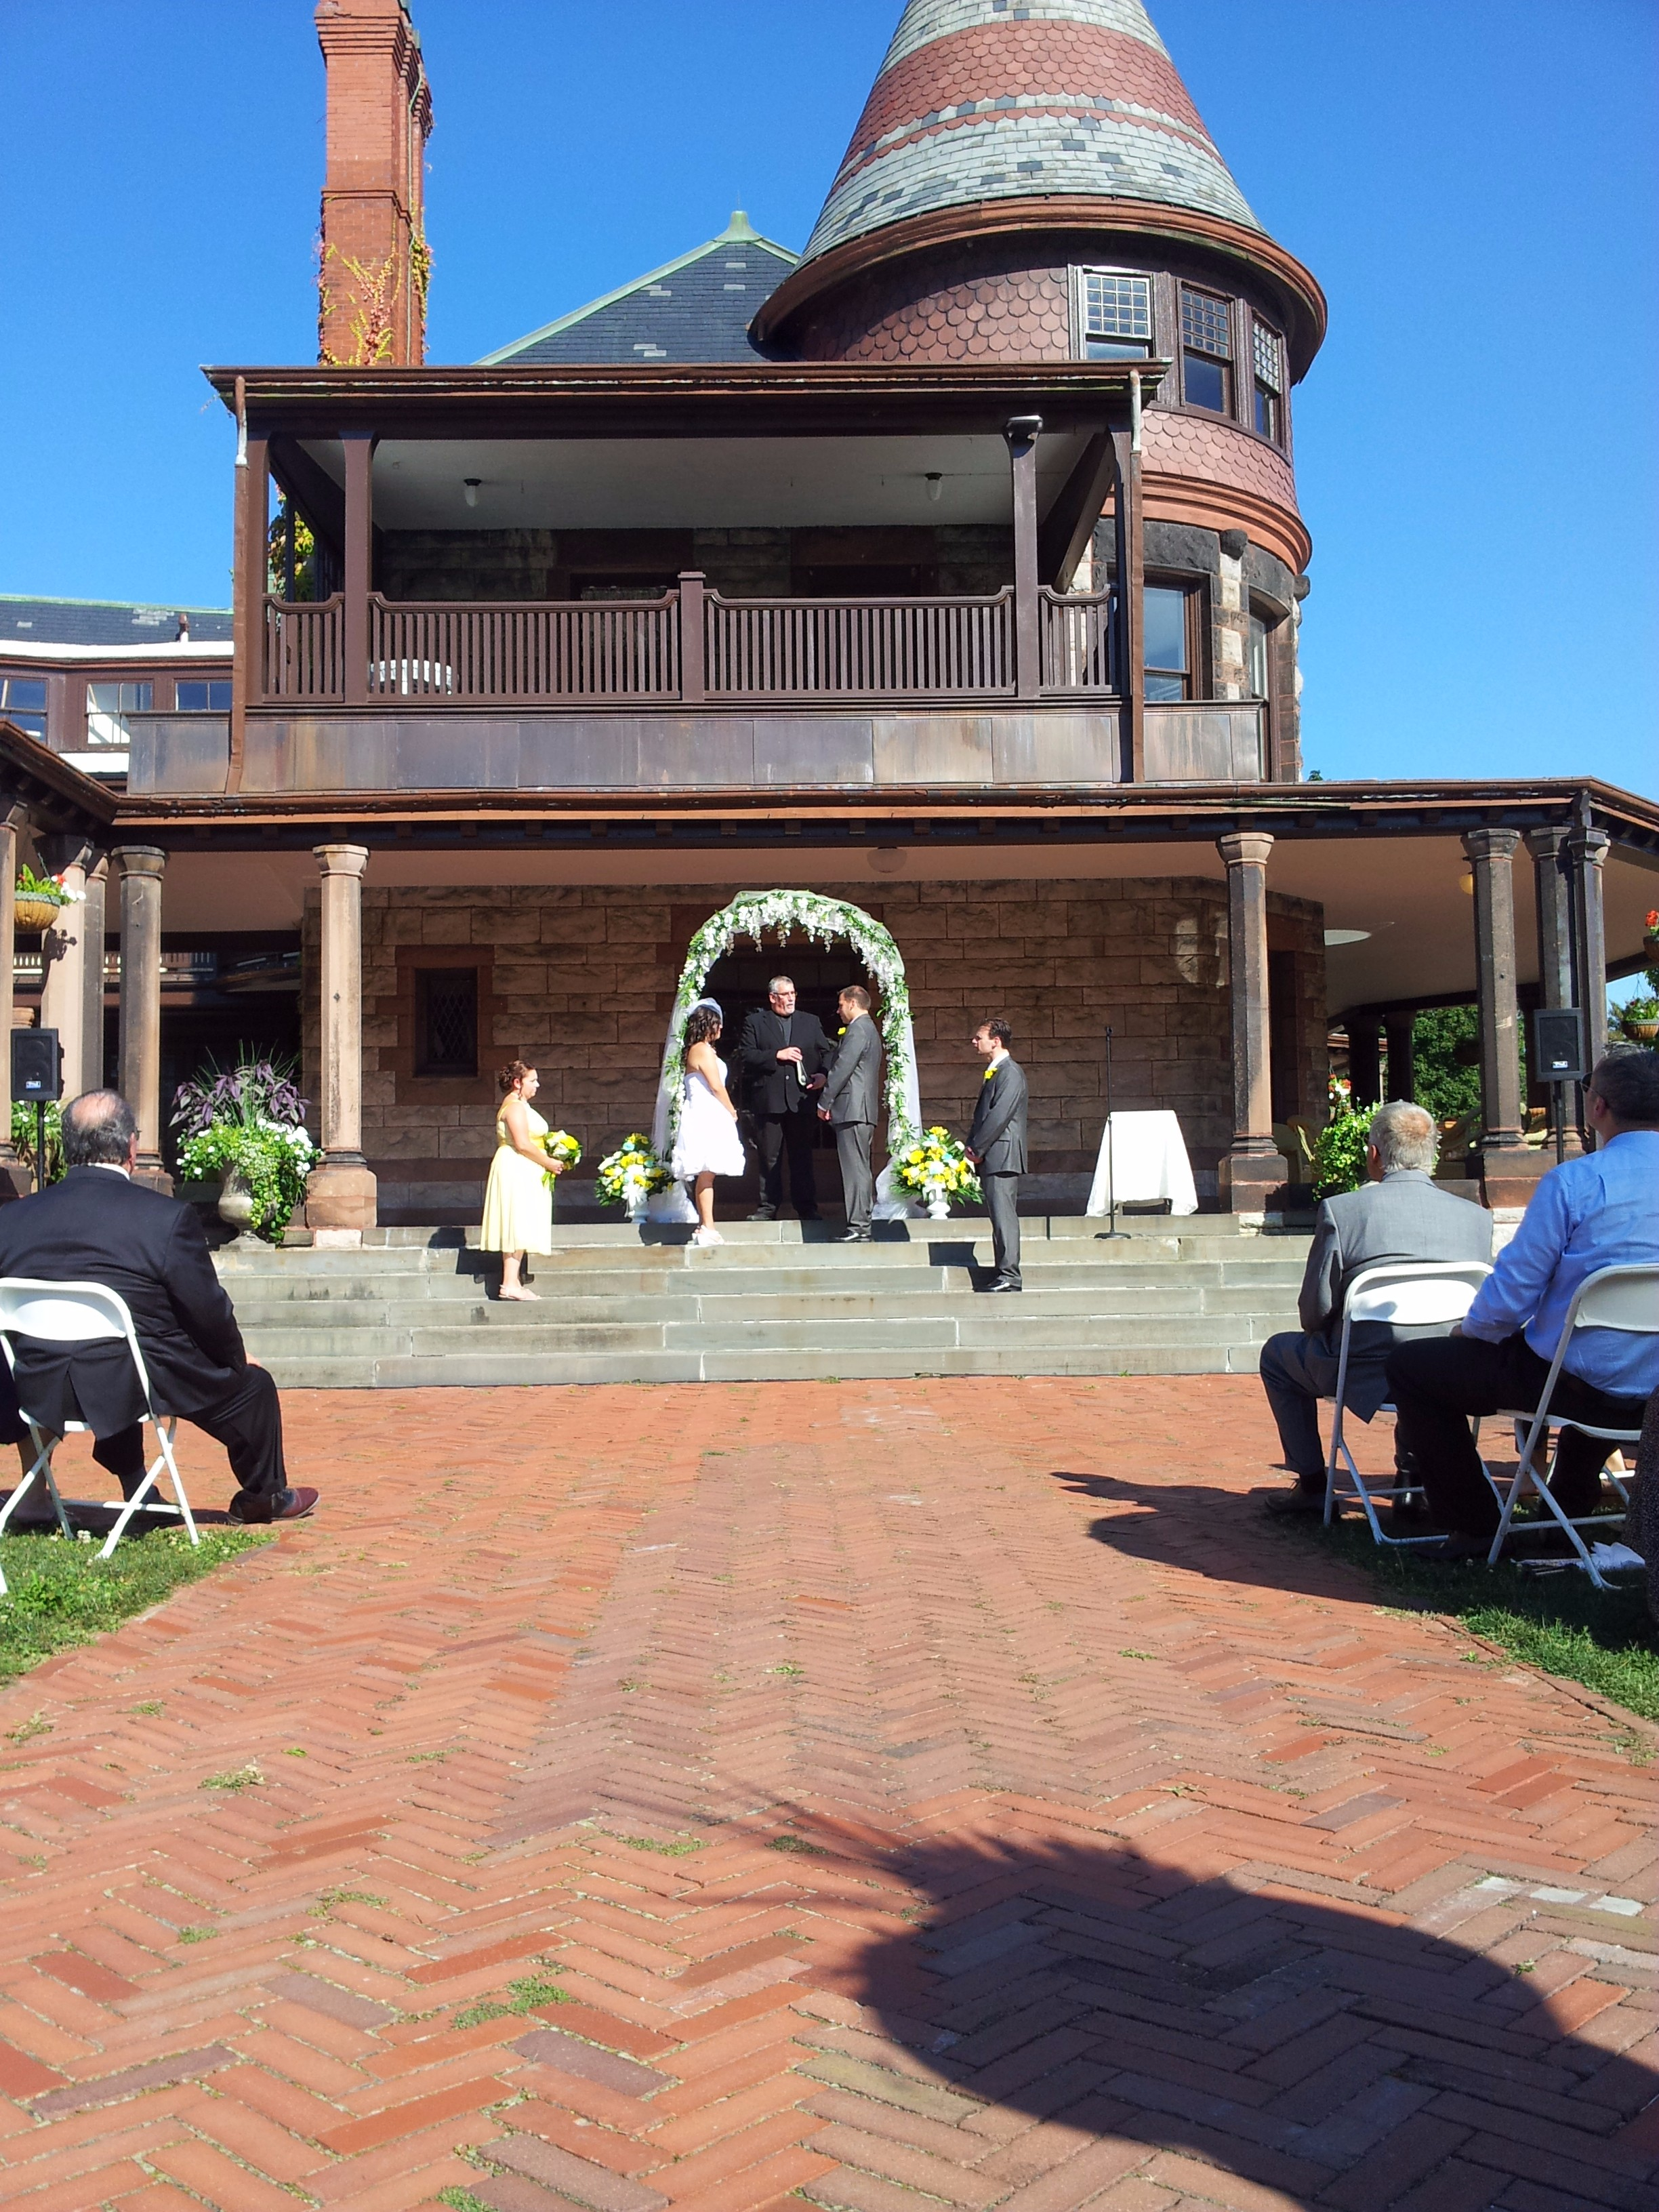 mansion-veranda-wedding-ceremony_8164816150_o